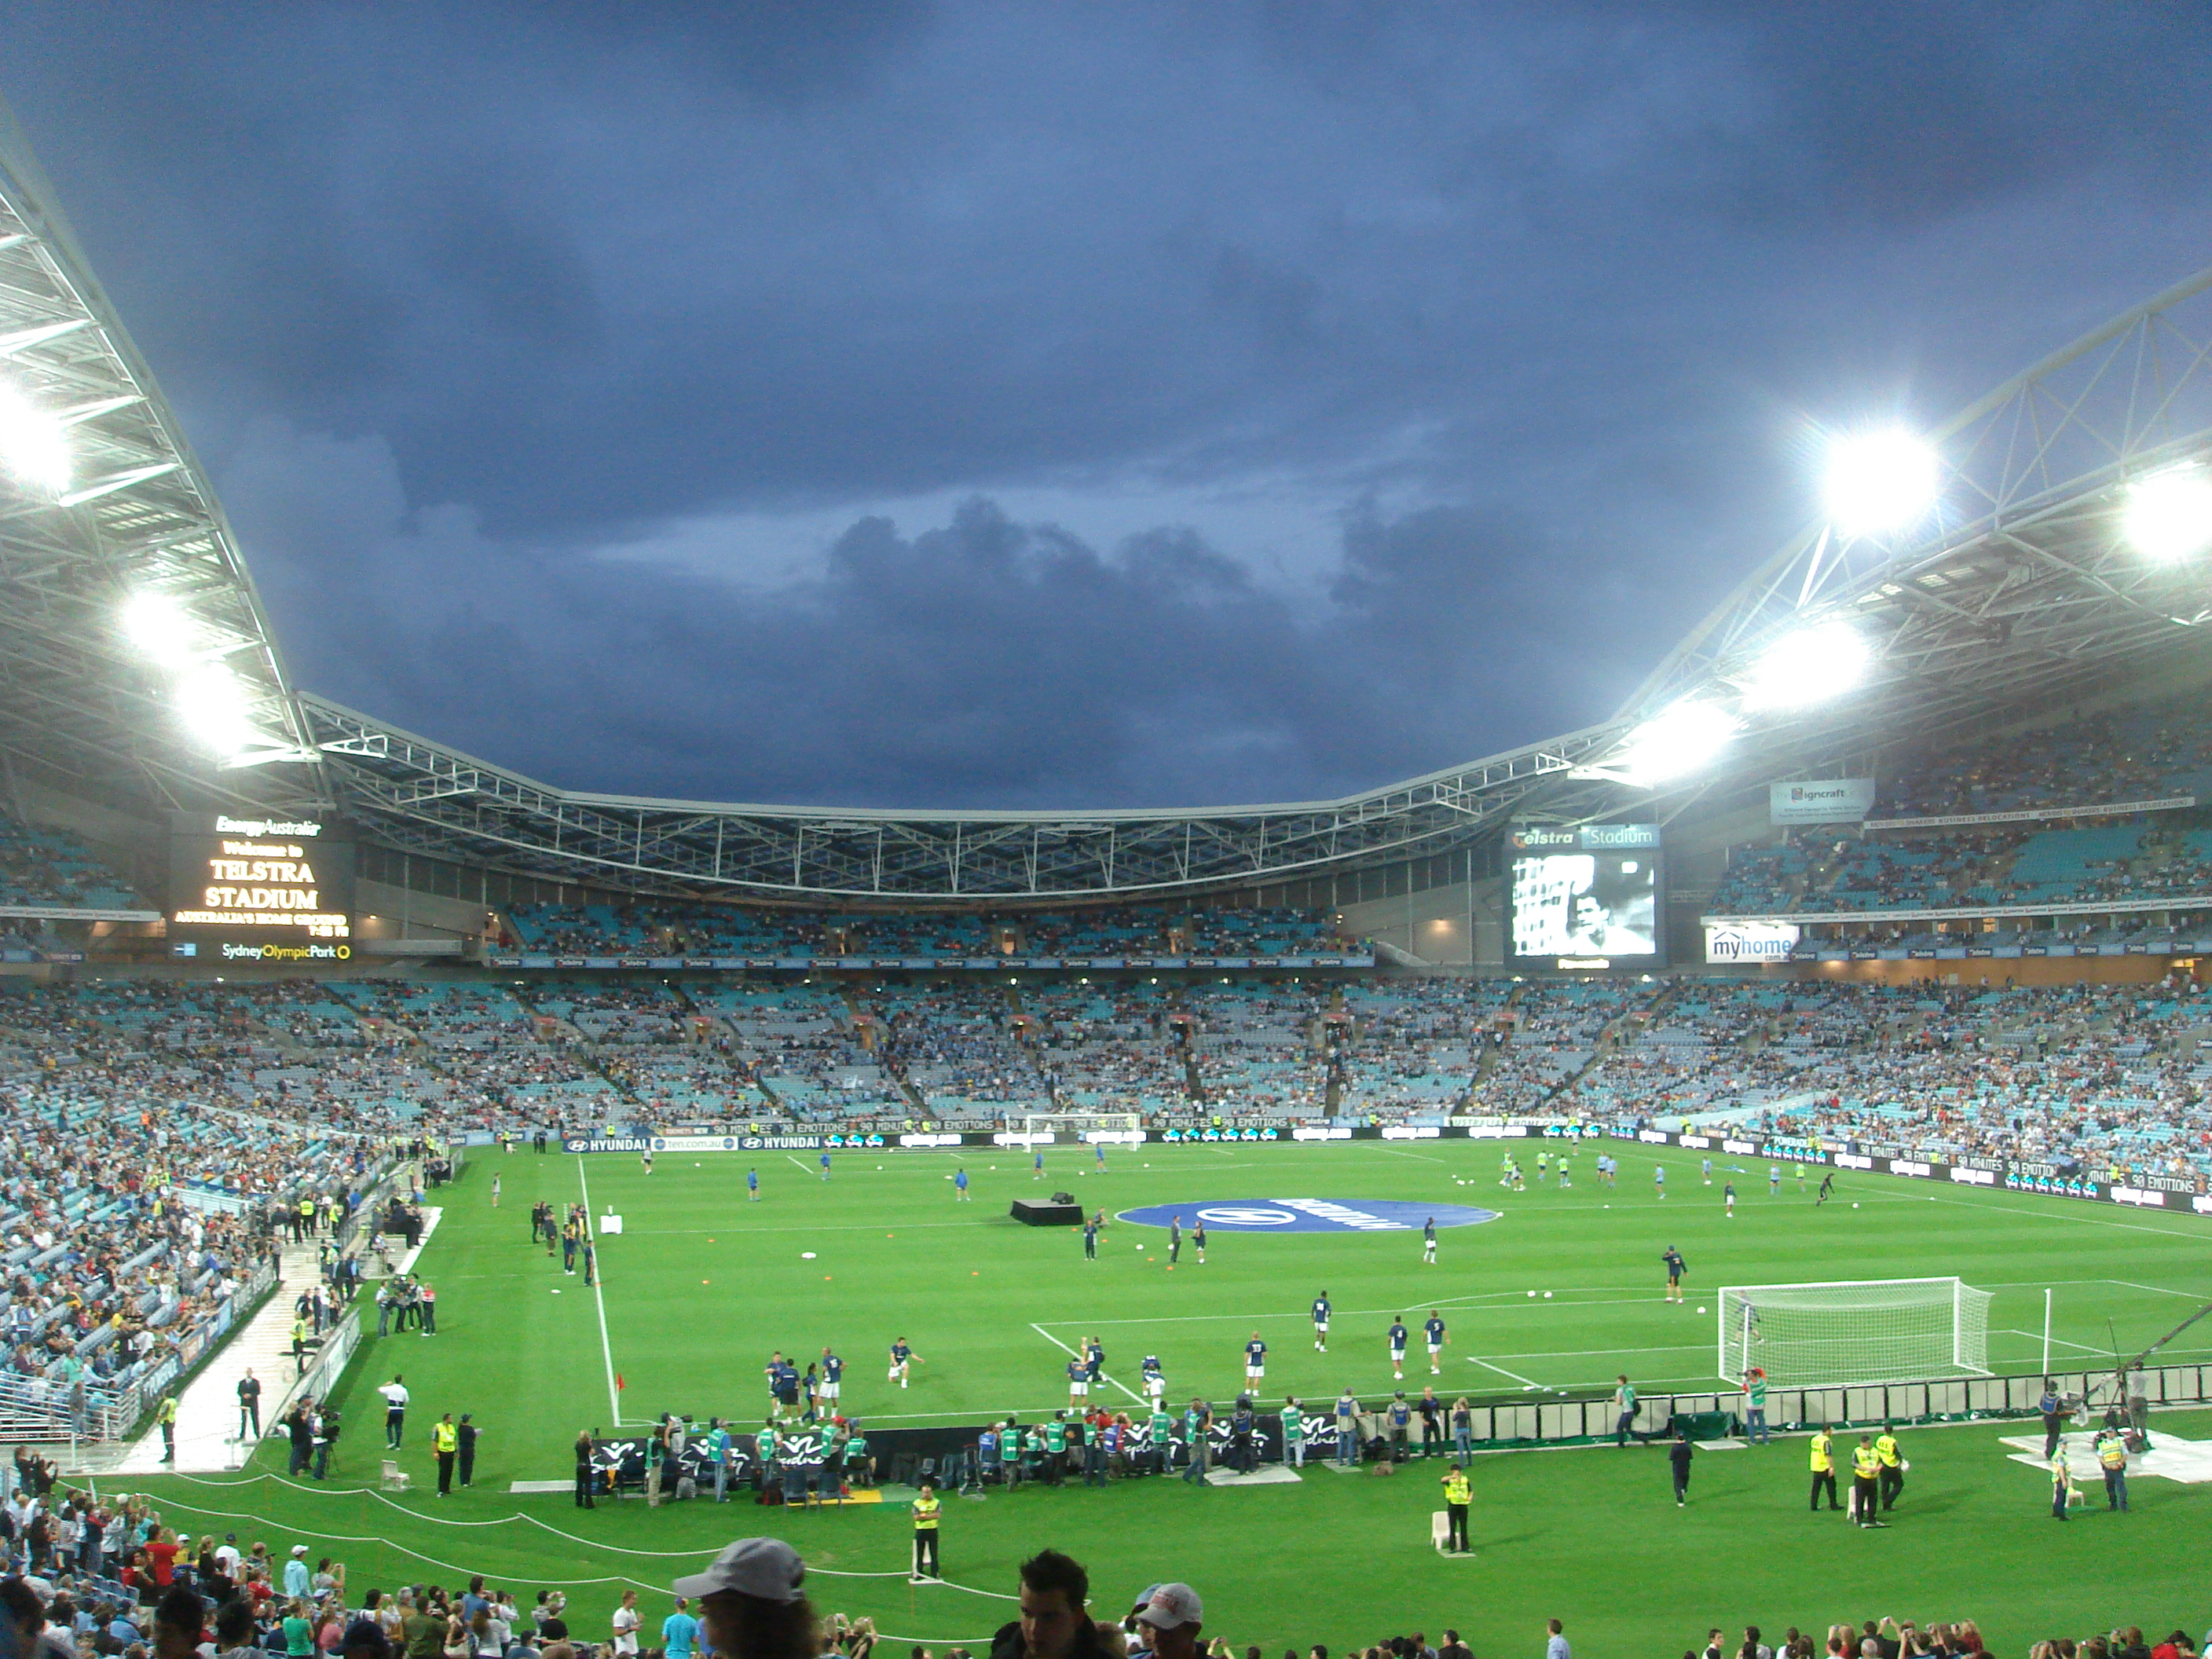 File:Telstra Stadium at Night.jpg - Wikipedia, the free encyclopedia